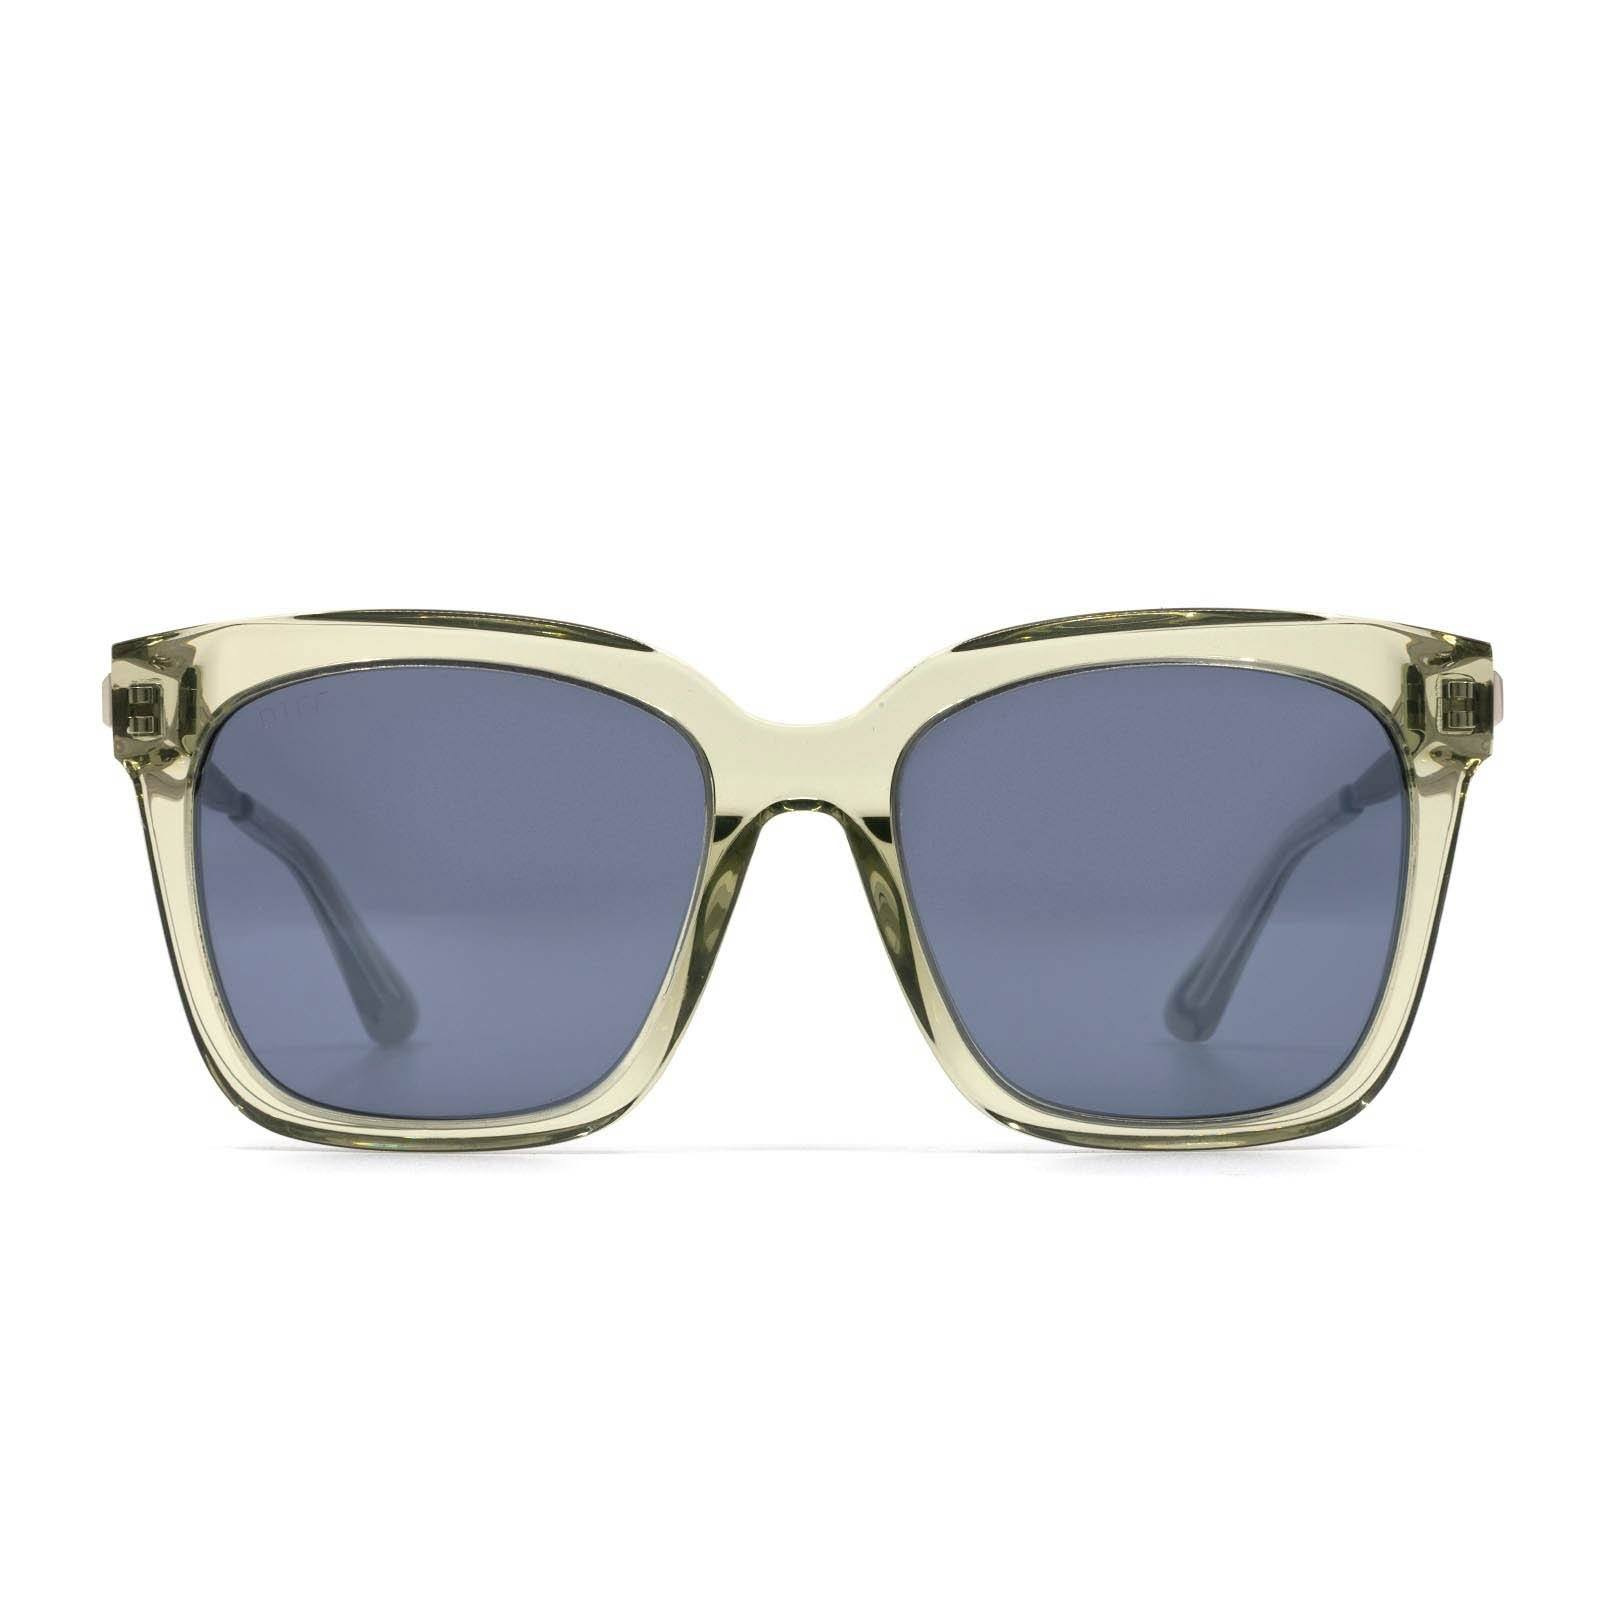 DIFF Eyewear - Bella - Olive Crystal Accessories DIFF Eyewear